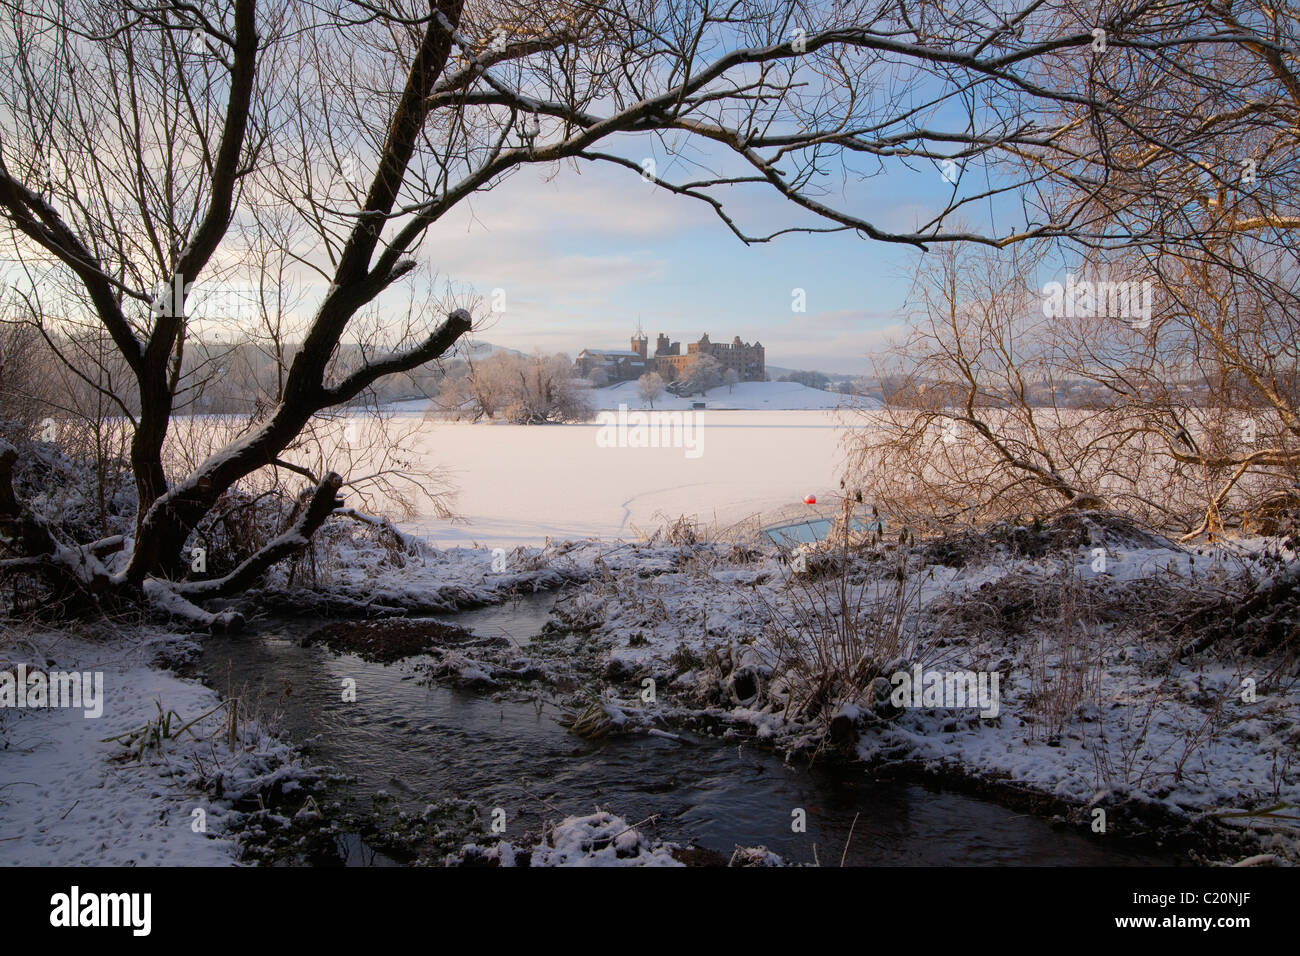 Looking across frozen Loch to Linlithgow Palace, Scotland,  2011 Stock Photo